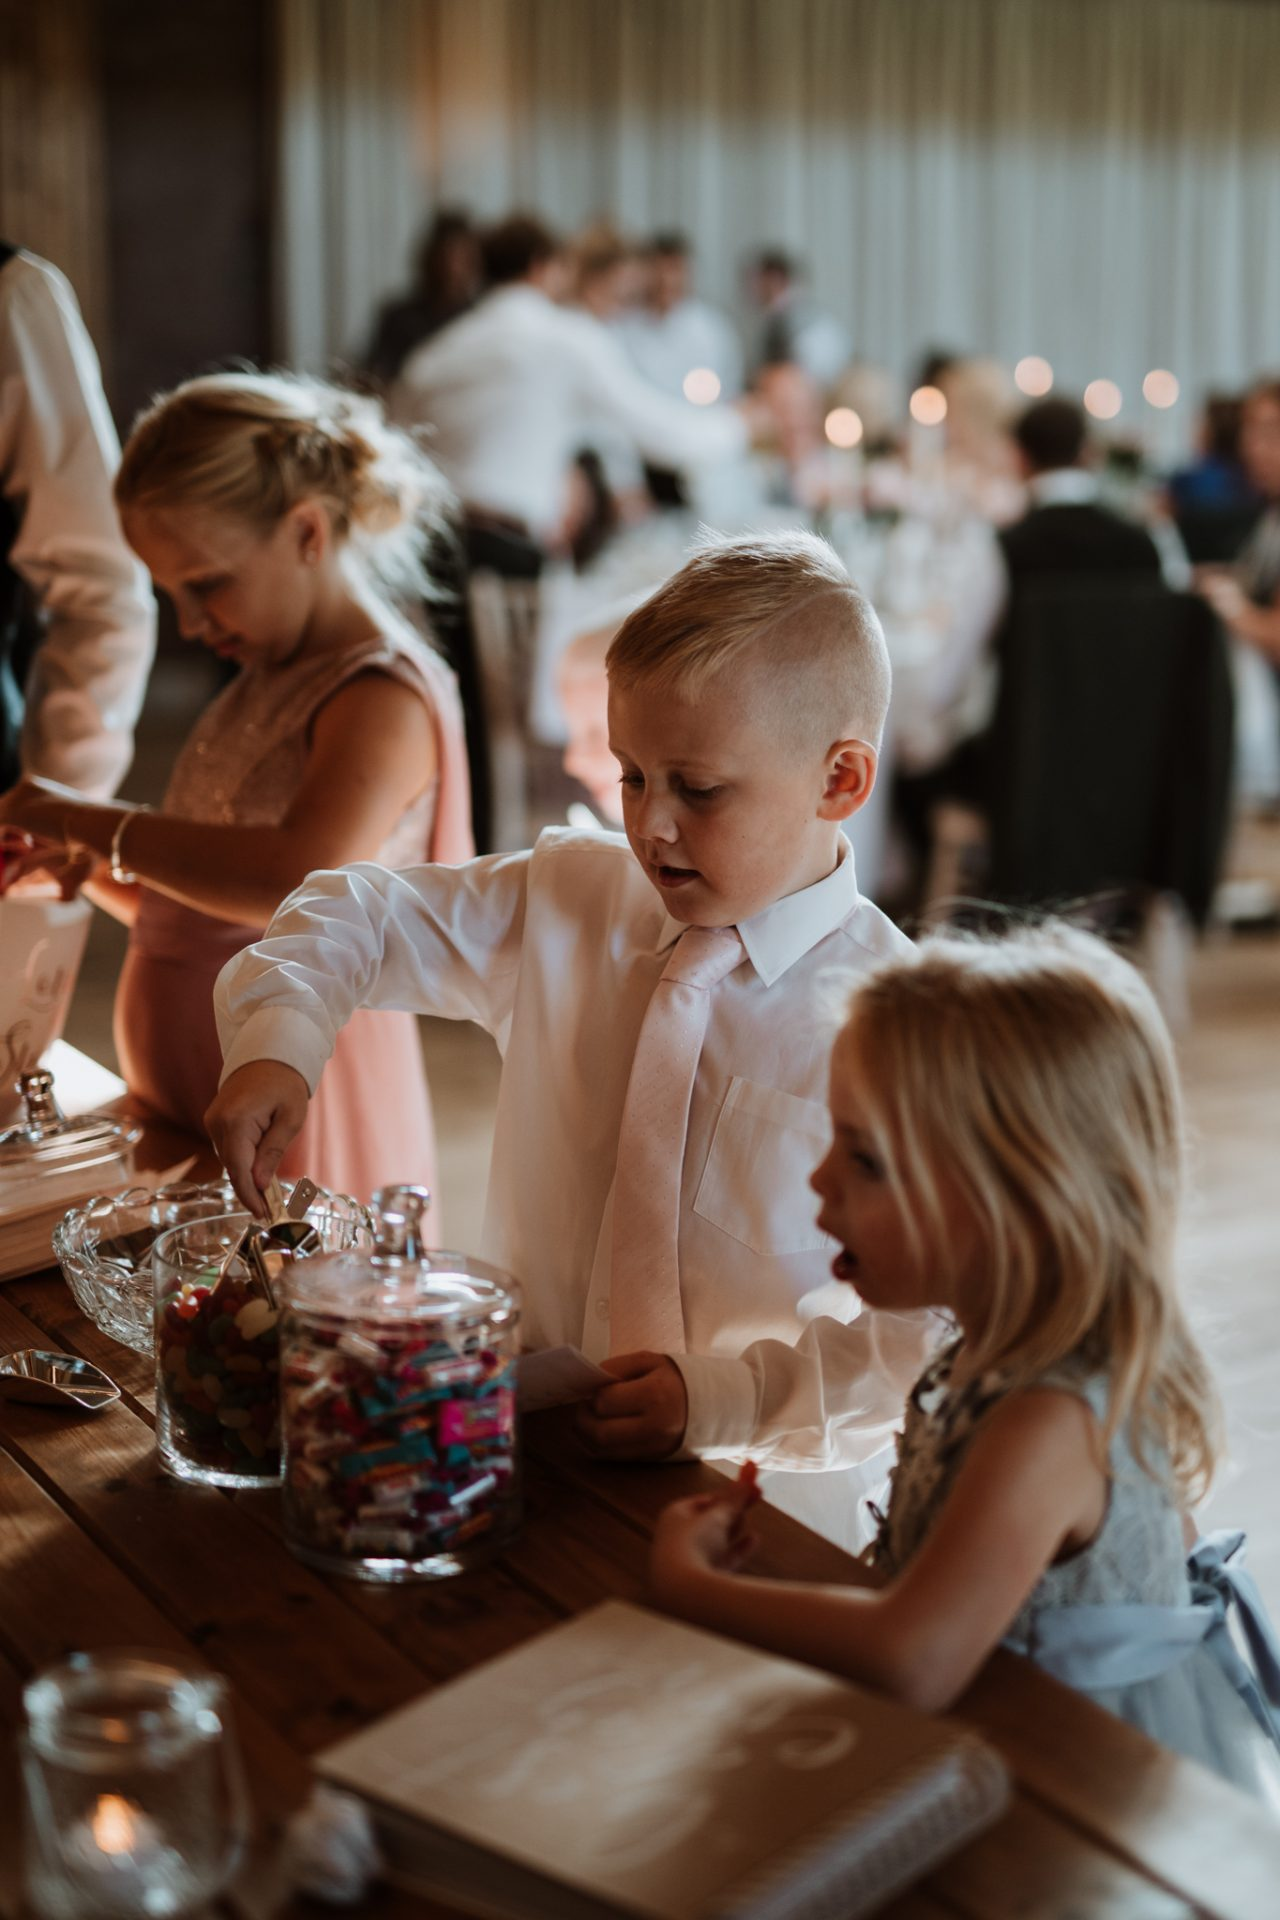 children help themselves to sweet table